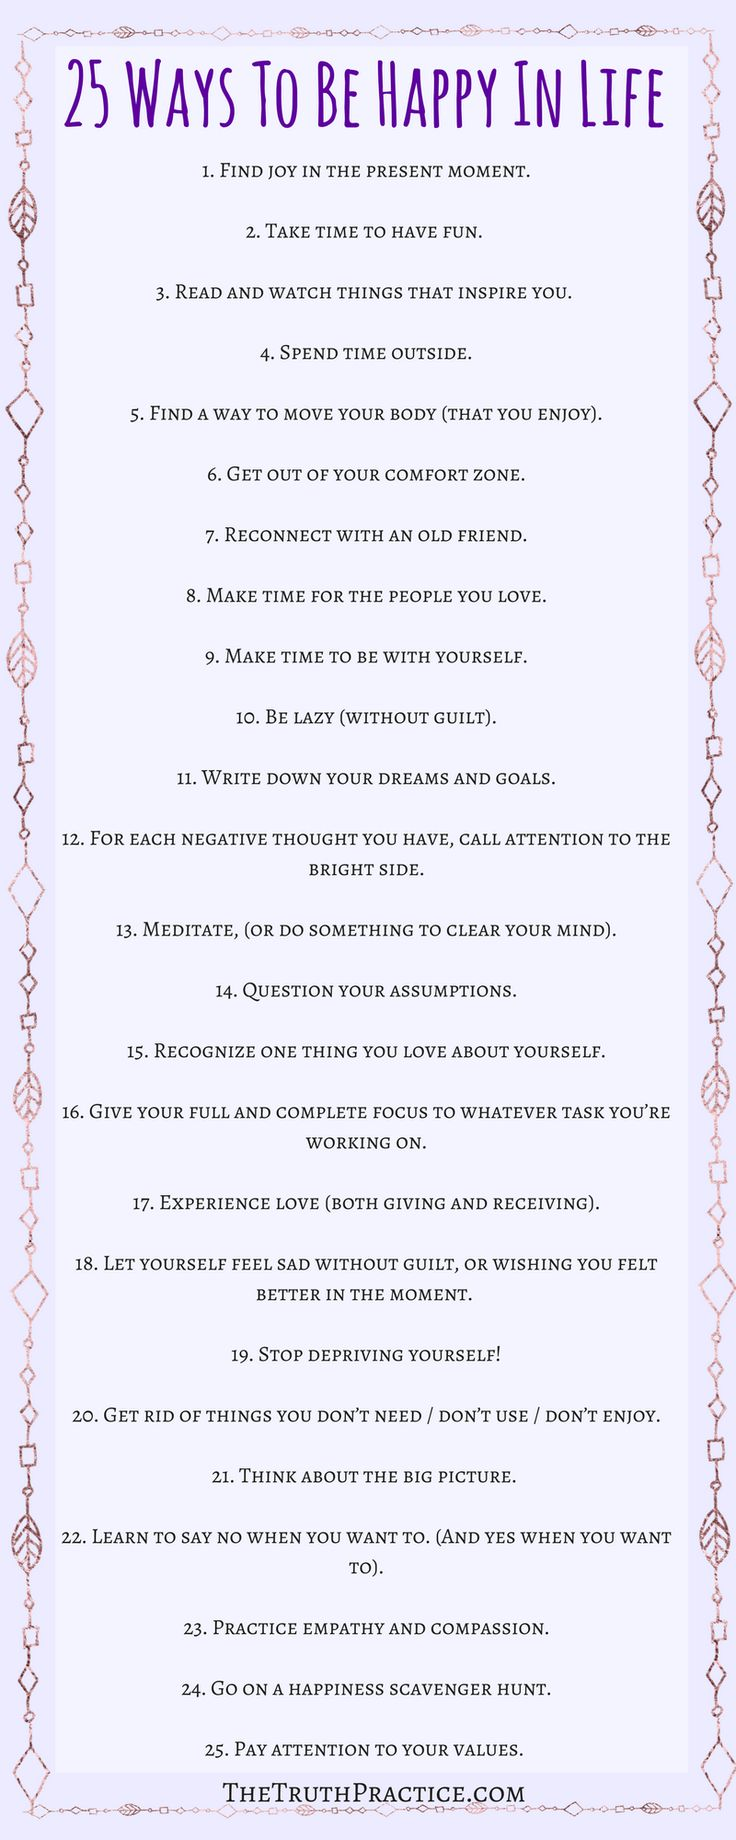 25 Tips For How To Be Happy In Life + Free Inspiration Printable & Journal  Worksheet